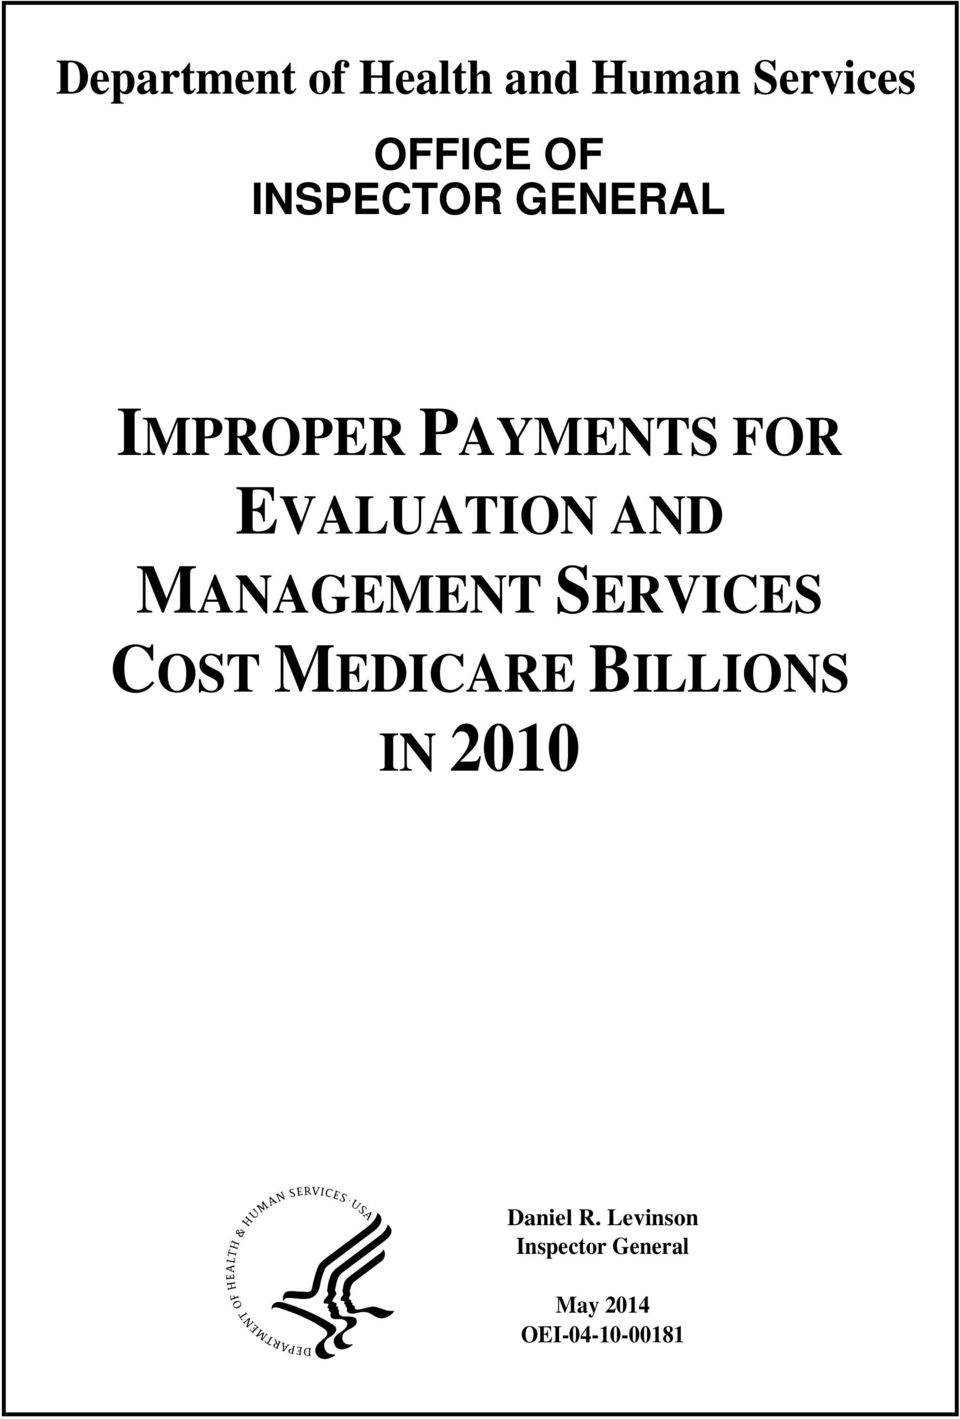 MANAGEMENT SERVICES COST MEDICARE BILLIONS IN 2010